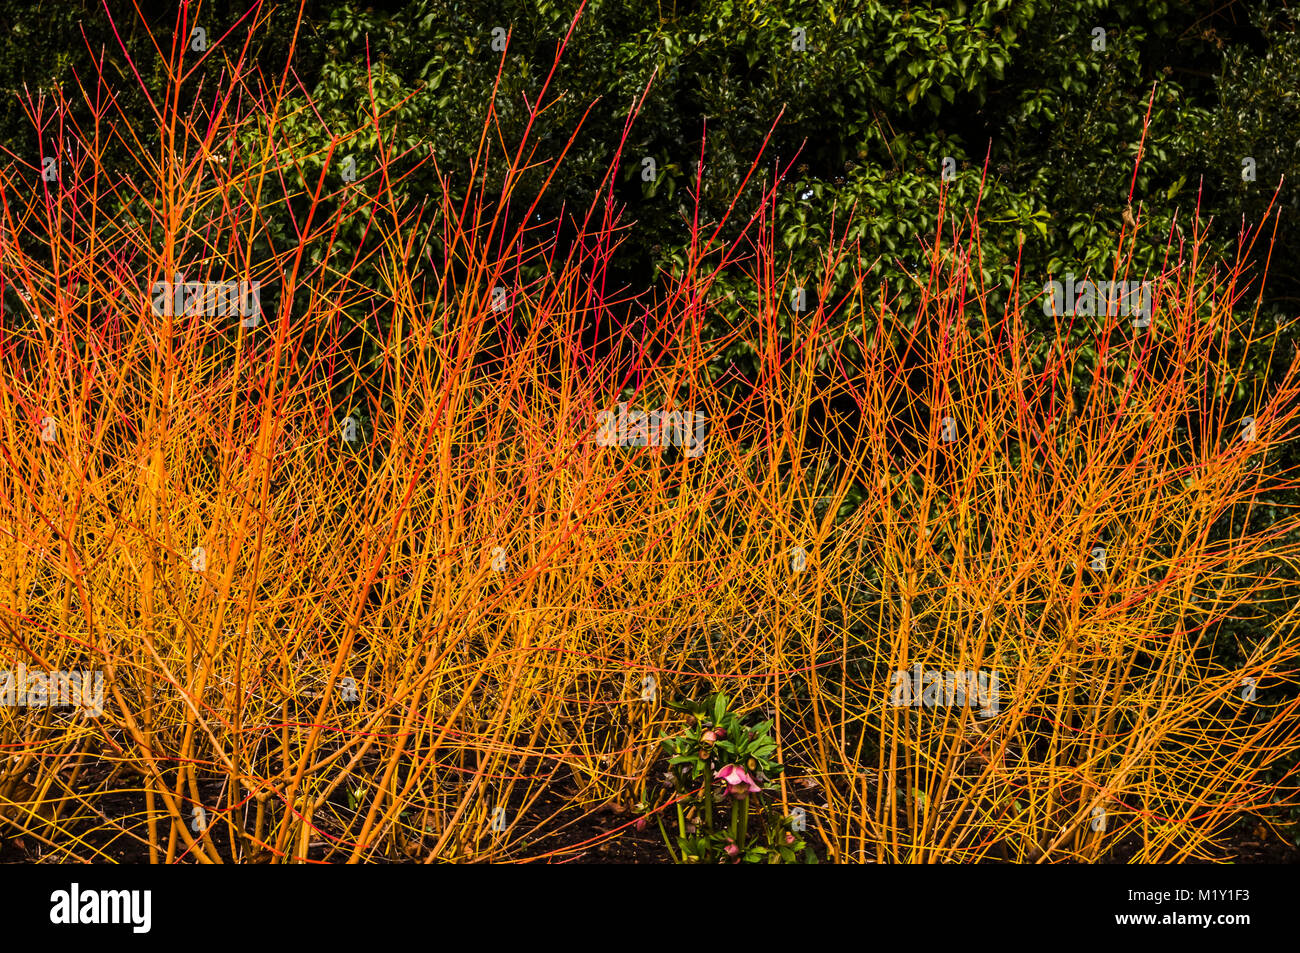 Flame red stems of Cornus at Polesden Lacey, Surrey, UK - Stock Image